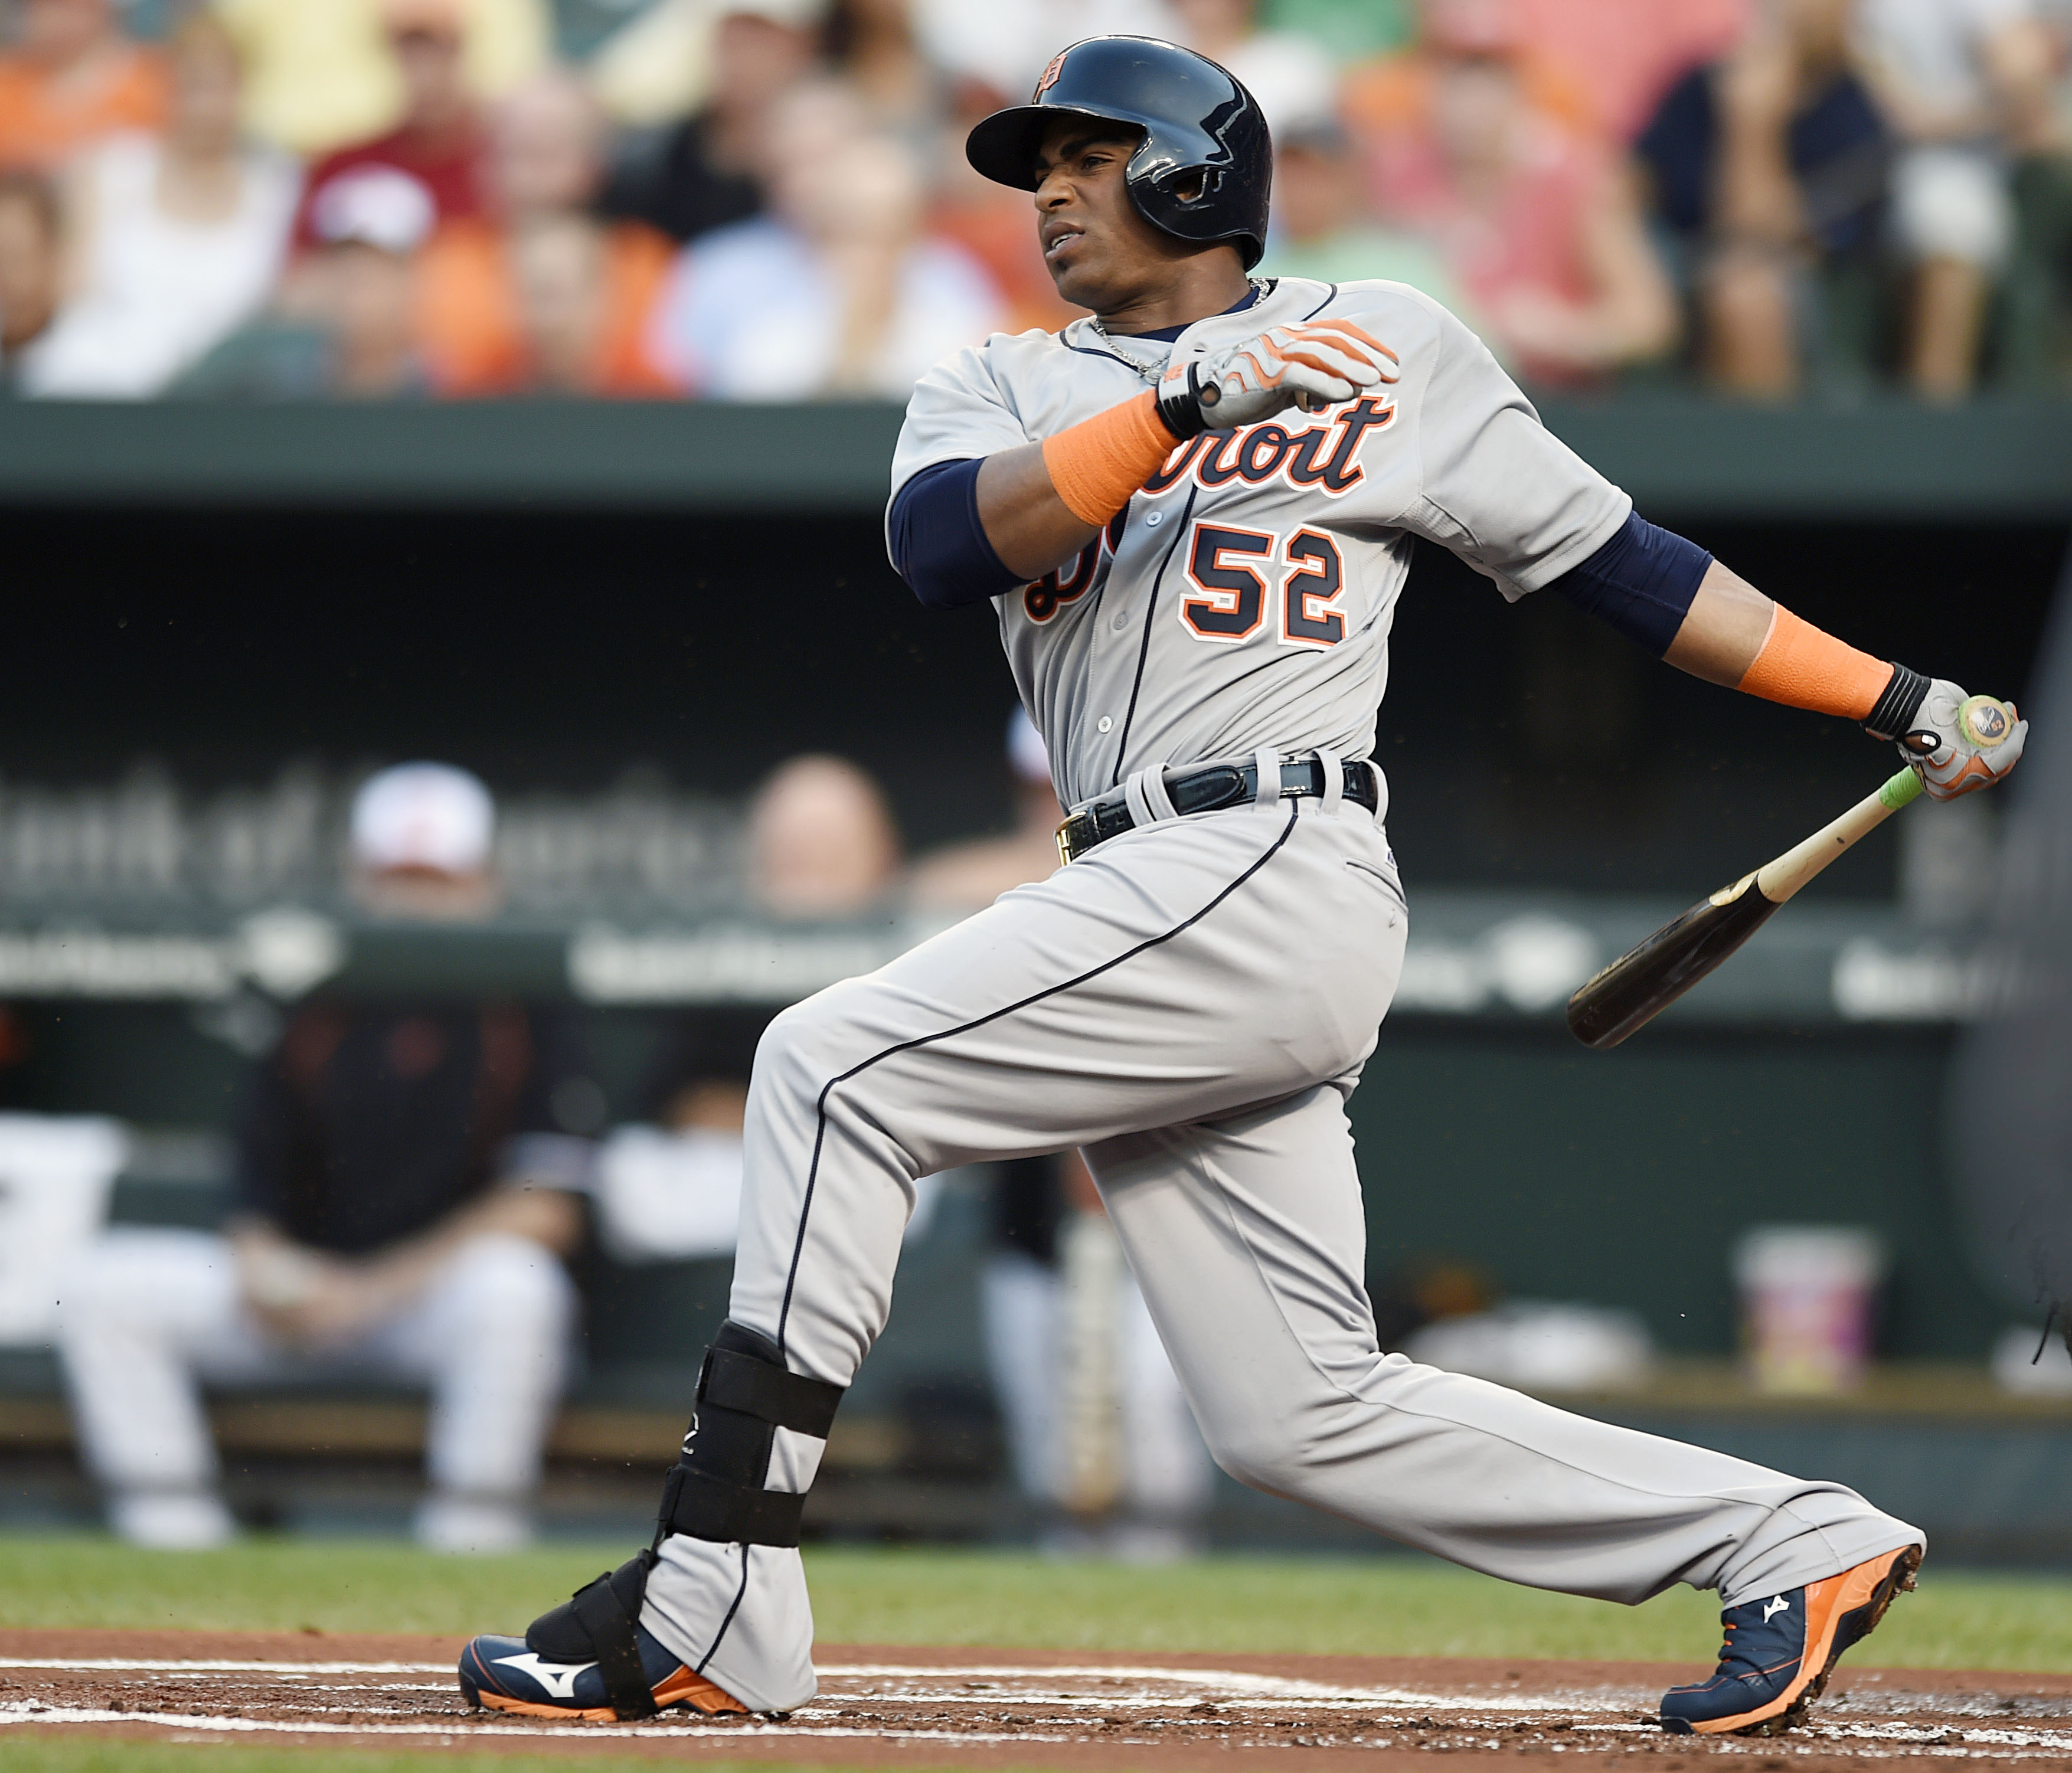 Detroit Tigers' Yoenis Cespedes follows through on a single against the Baltimore Orioles in the first inning of a baseball game, Thursday, July 30, 2015, in Baltimore.(AP Photo/Gail Burton)